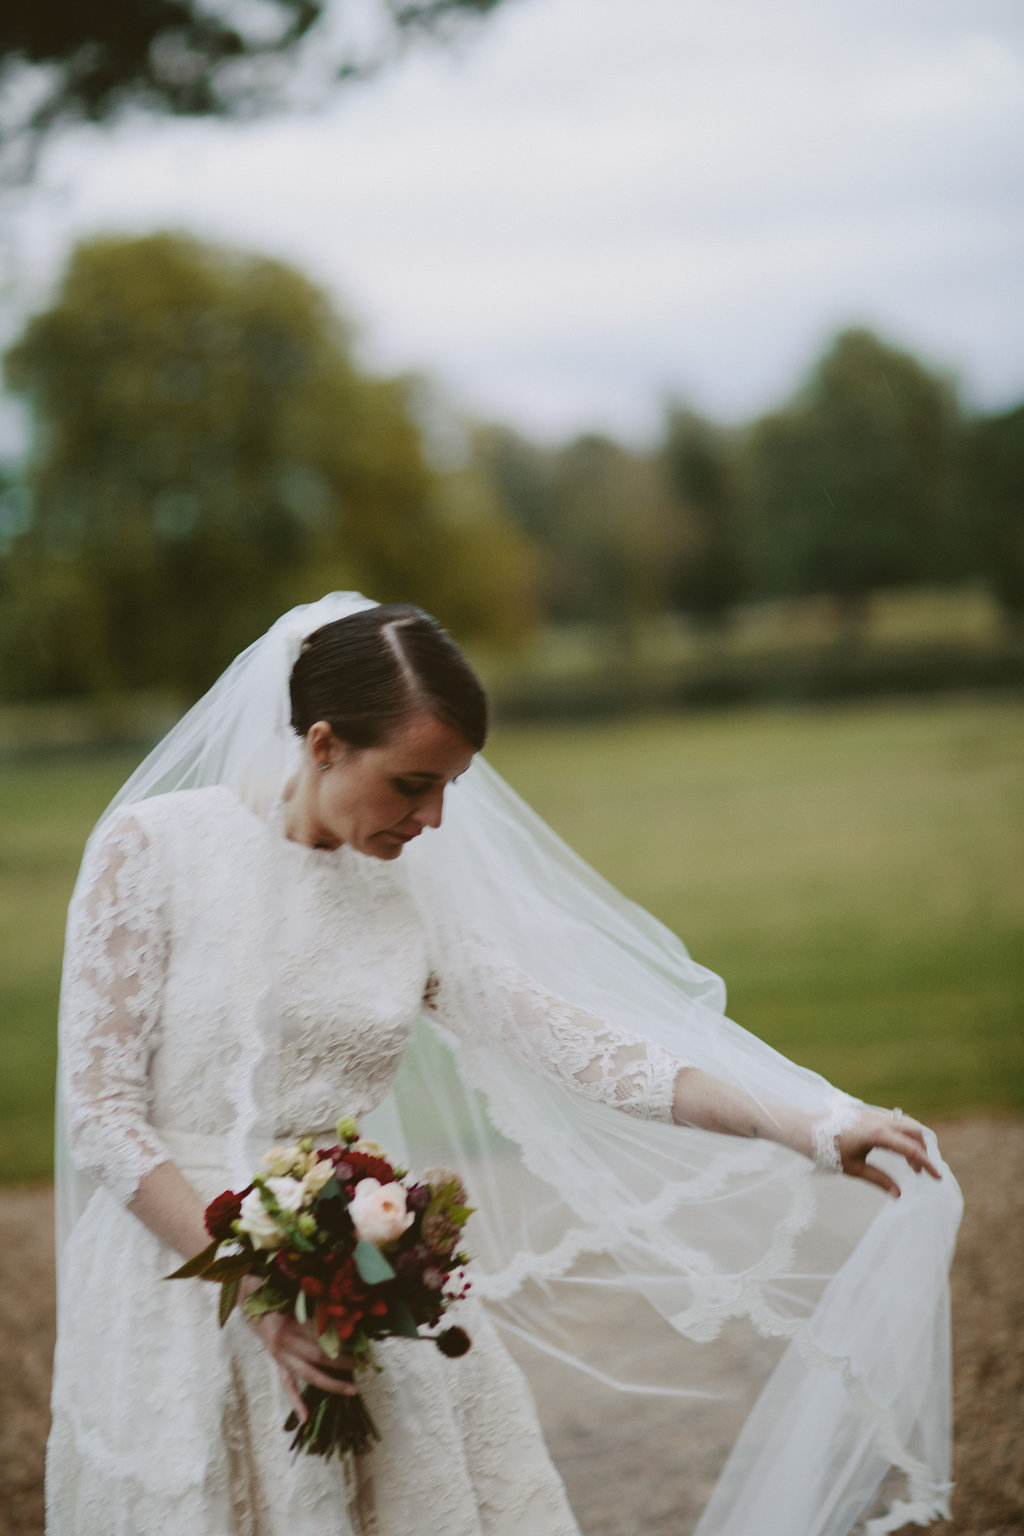 Wedding Planner Portfolio Pocketful Of Dreams England. Gay Wedding Events. Affordable Wedding Photography Packages. Jewish Wedding Ceremony Processional. Wedding Invitations Wording Hosted By Bride And Groom. Wedding Bouquets Olympia Wa. Wedding Dress Strap Styles. Indian Wedding Photography Kl. Wedding Guest Book Easons